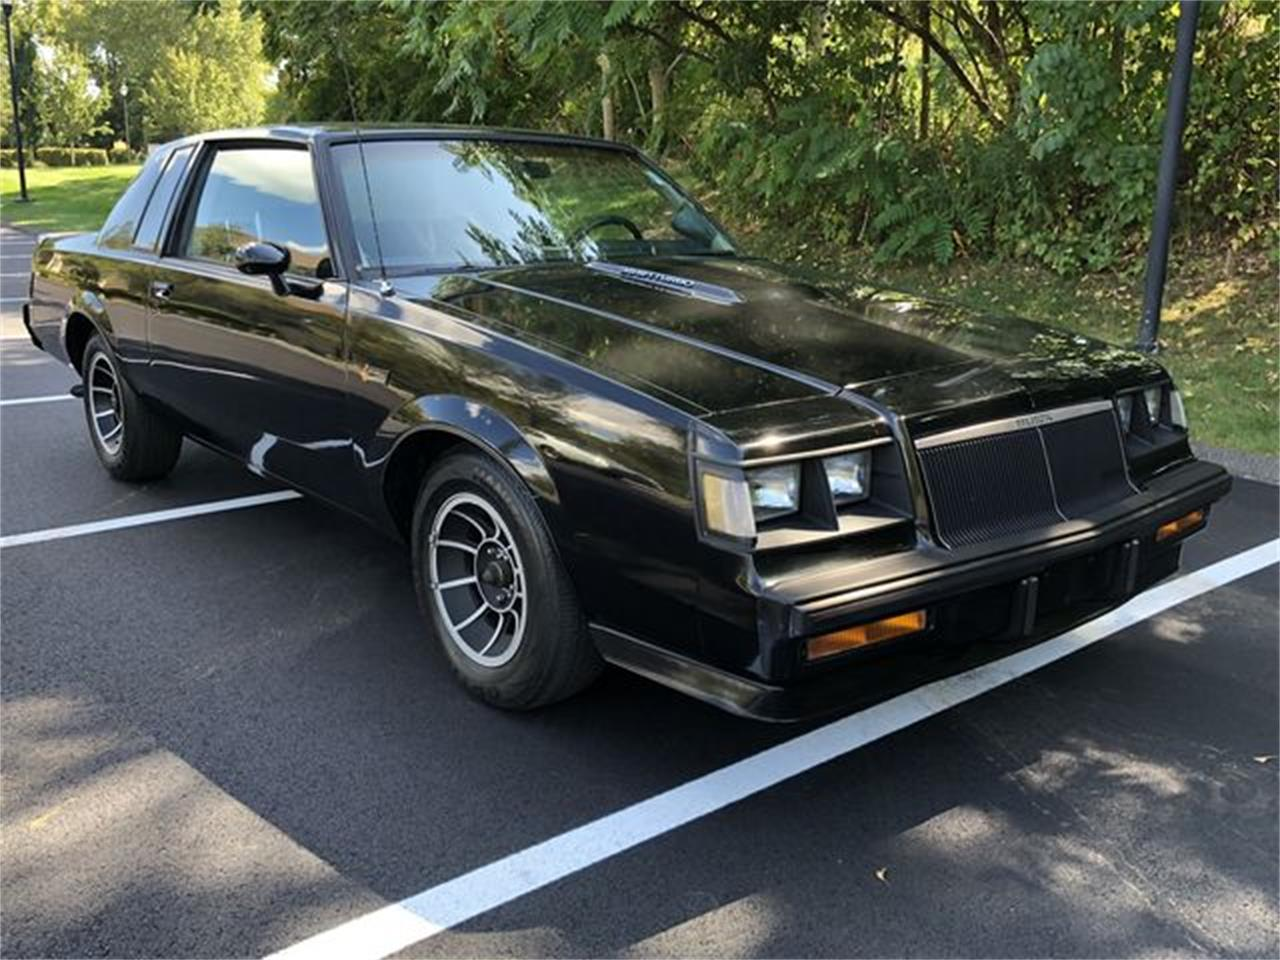 Large Picture of 1984 Grand National Offered by Carlisle Auctions - 341 deactivated - QZH2